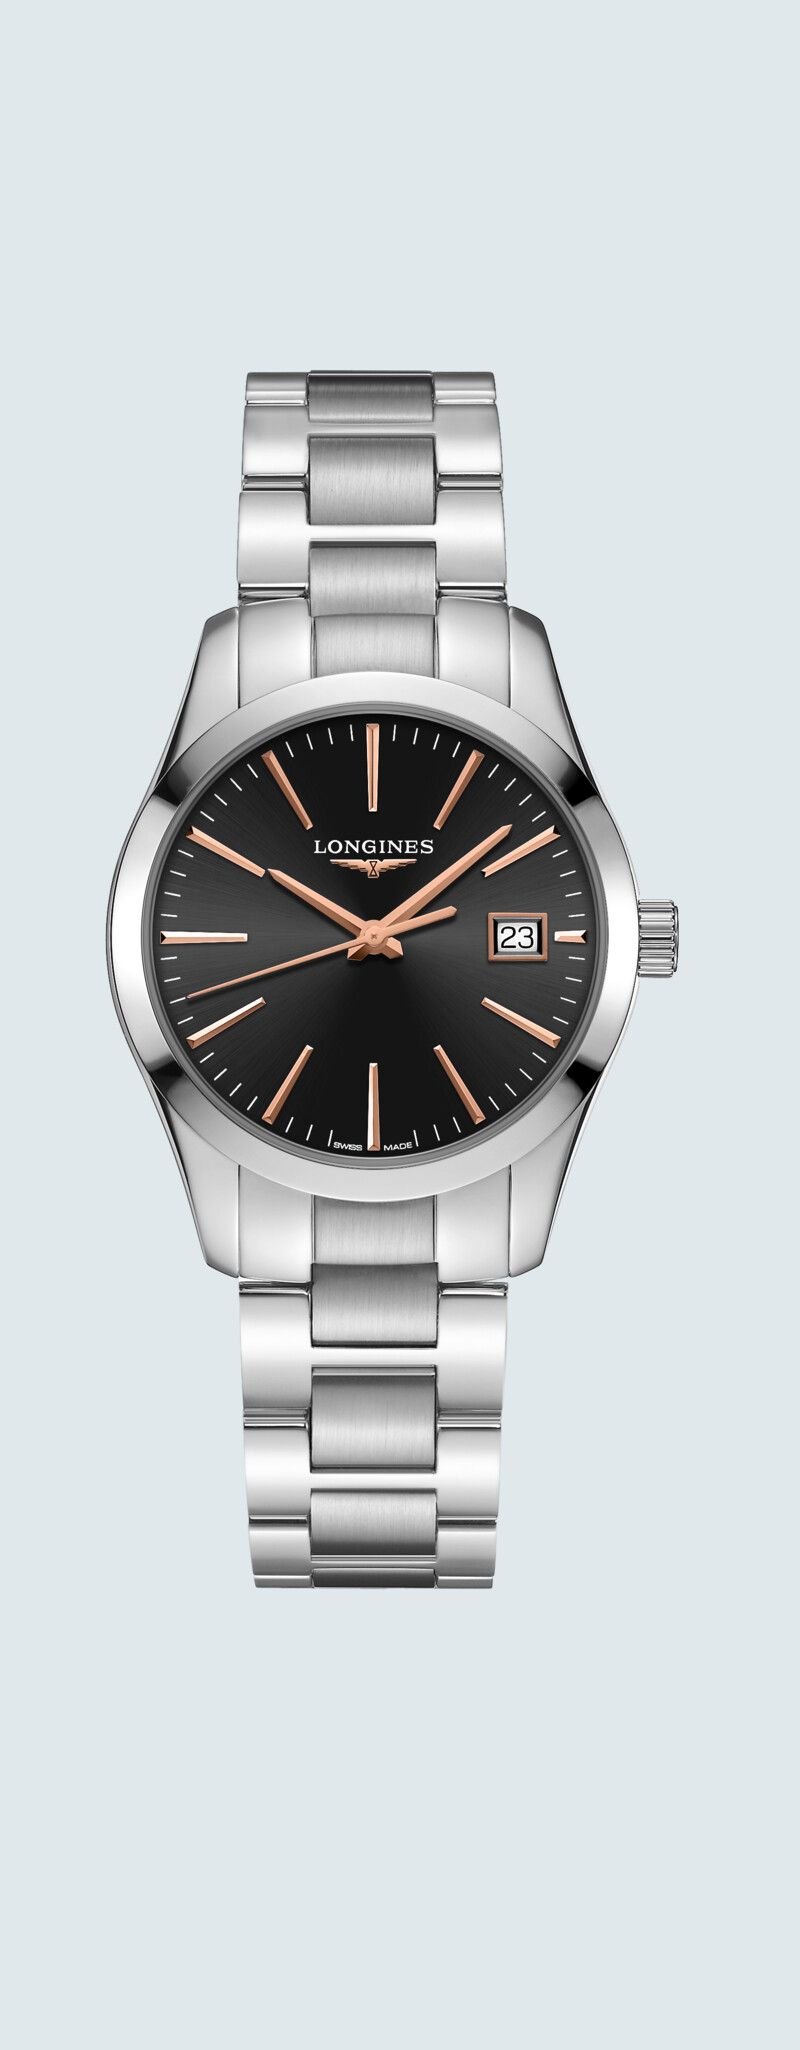 34.00 mm Stainless steel case with Black dial and Stainless steel strap - case zoom view